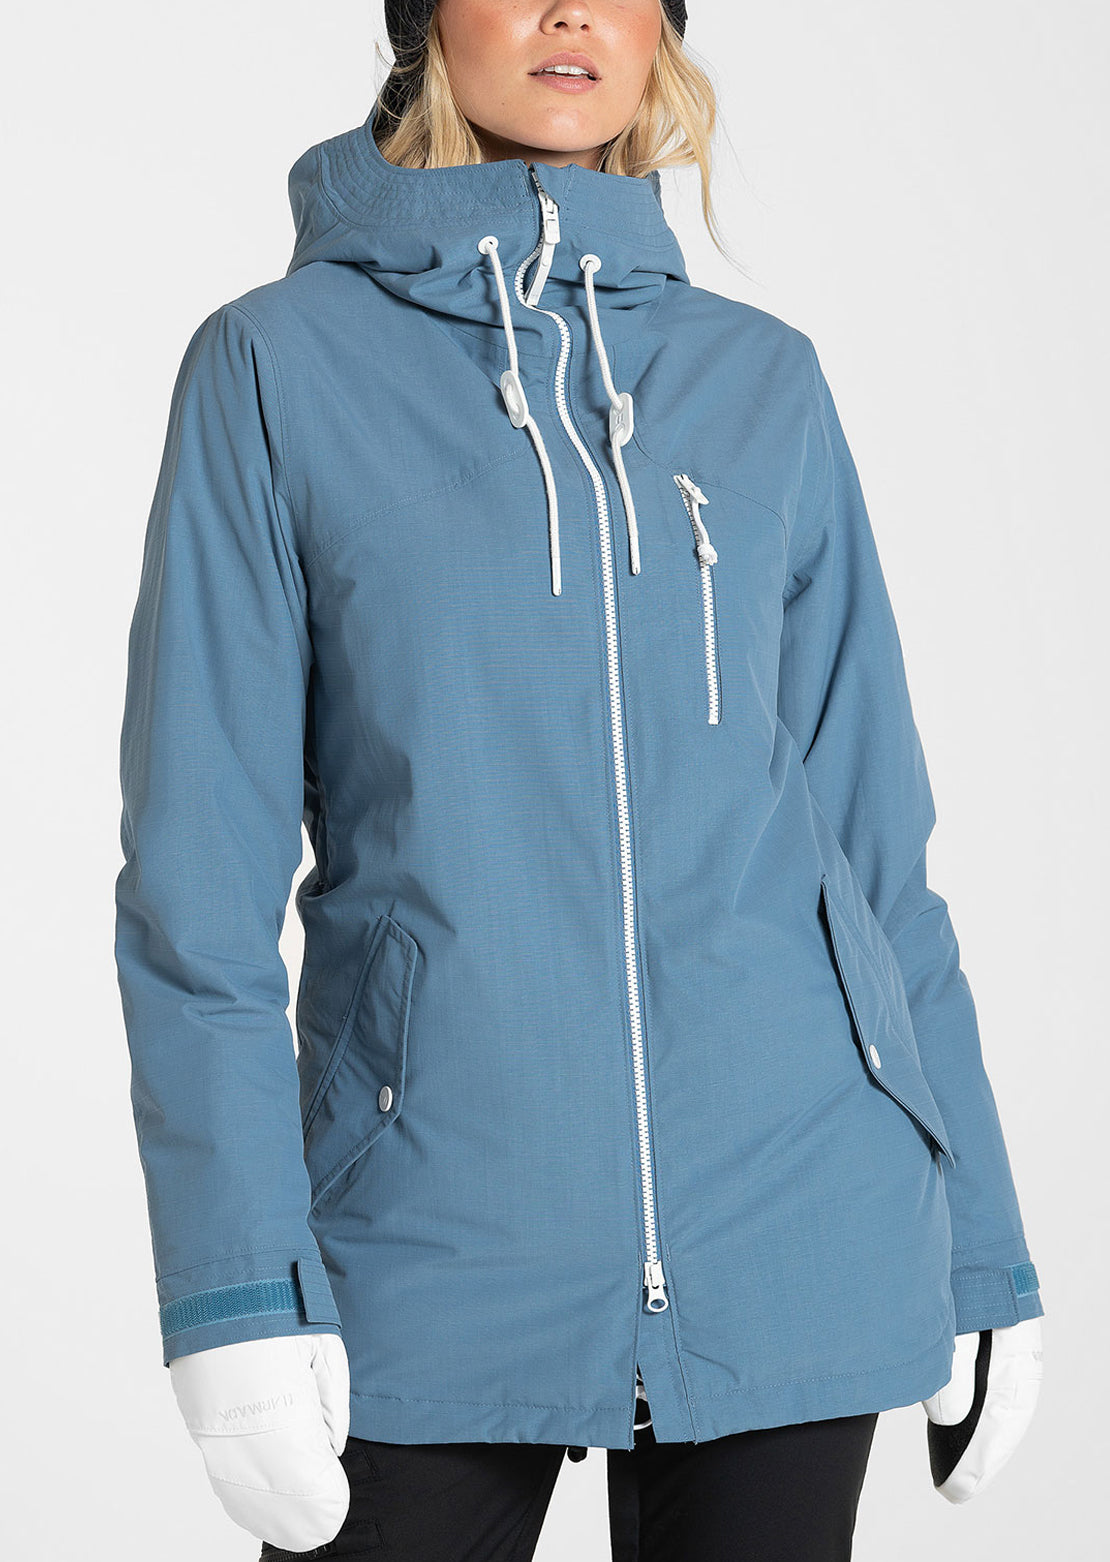 Armada Women's Patermost Insulated Jacket Mist